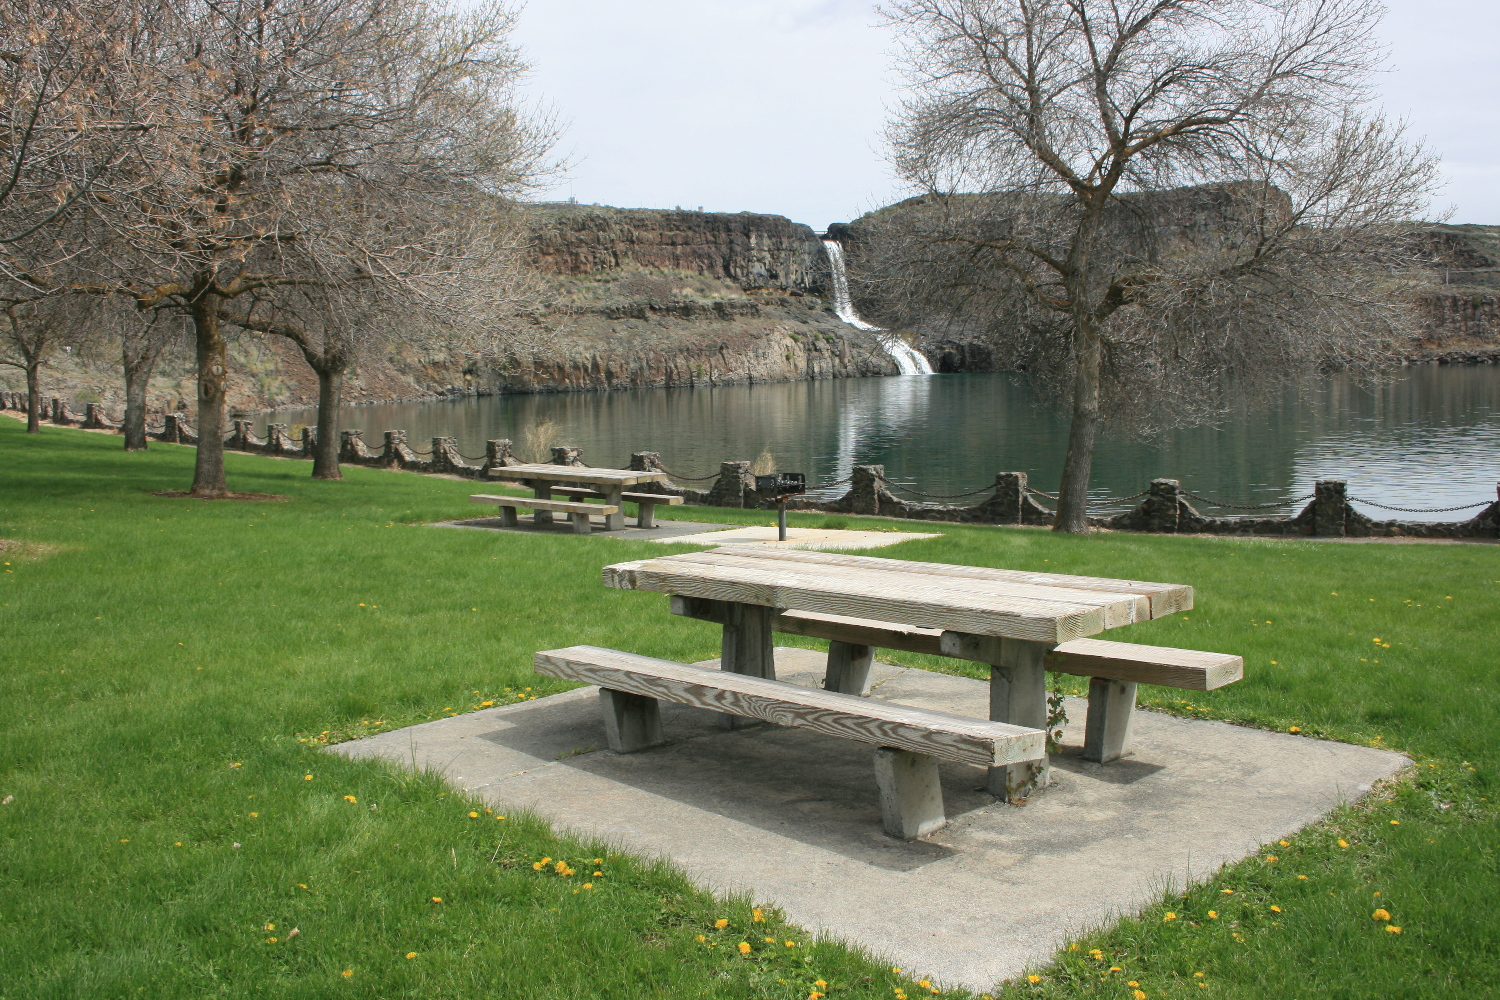 Summer Falls, with the park in the foreground.